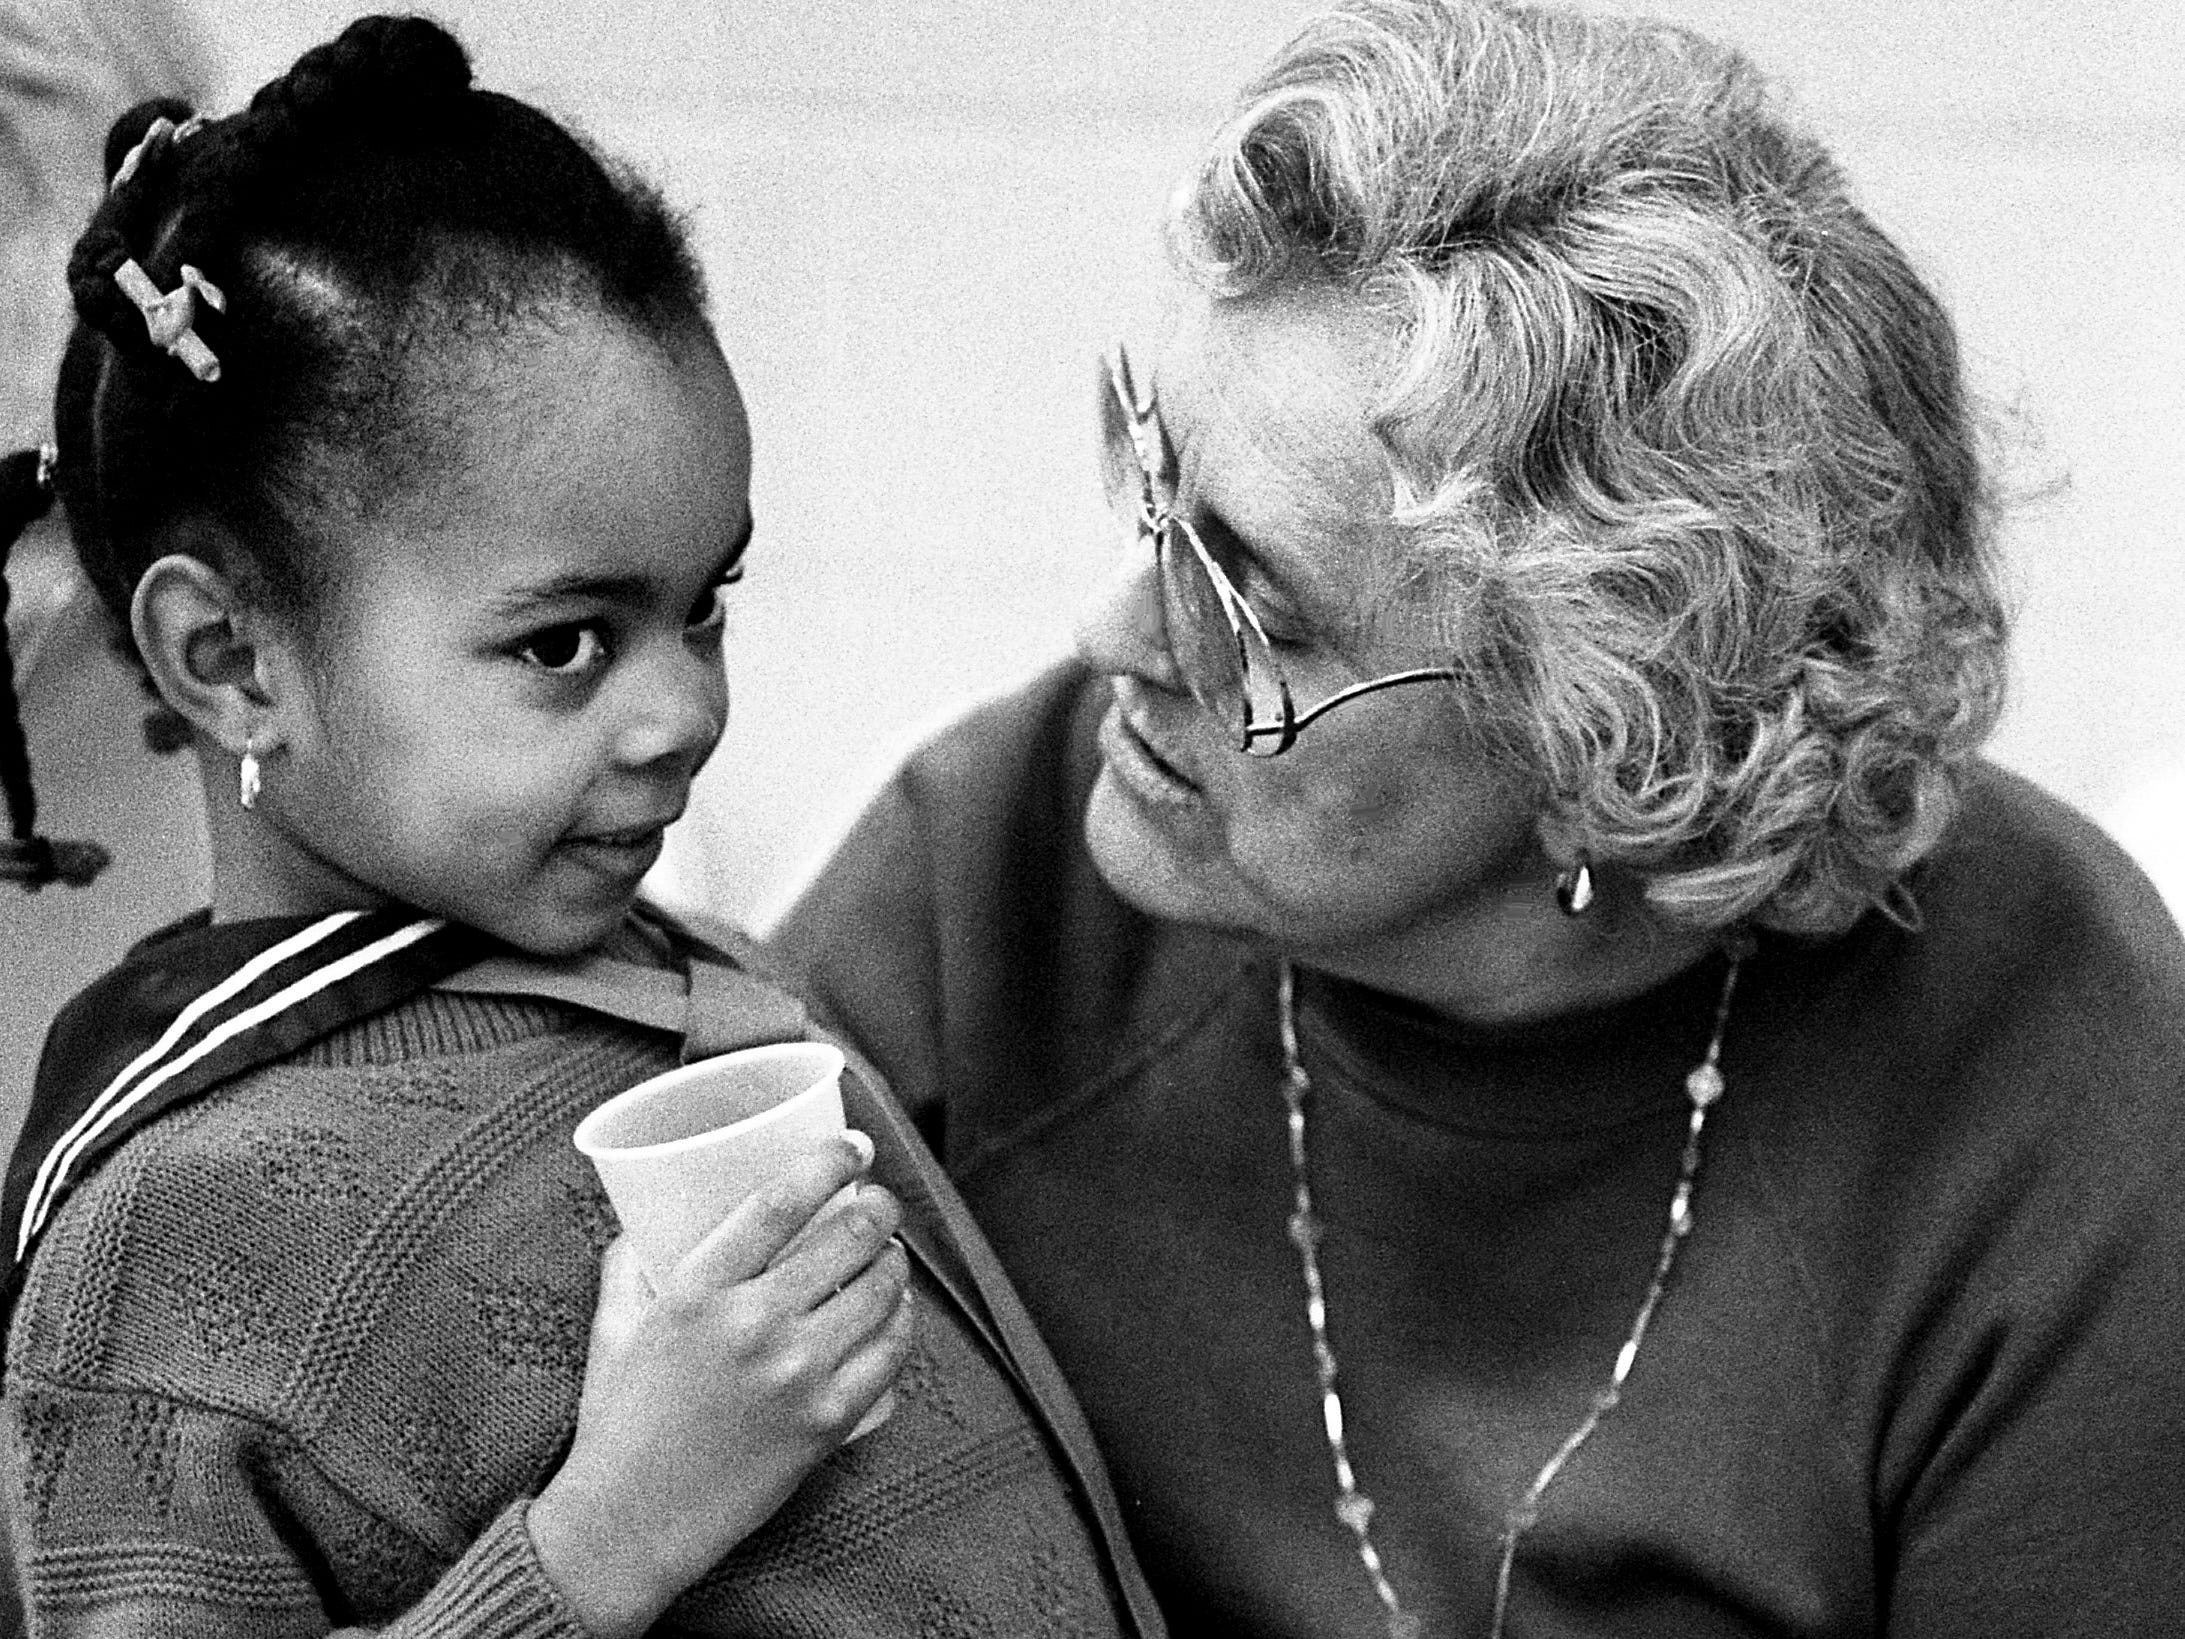 Jennifer Harris, 5, of The Ensworth School, chats with Marie Mills during a Valentine's party at the J.B. Knowles Center on Feb. 13, 1989.